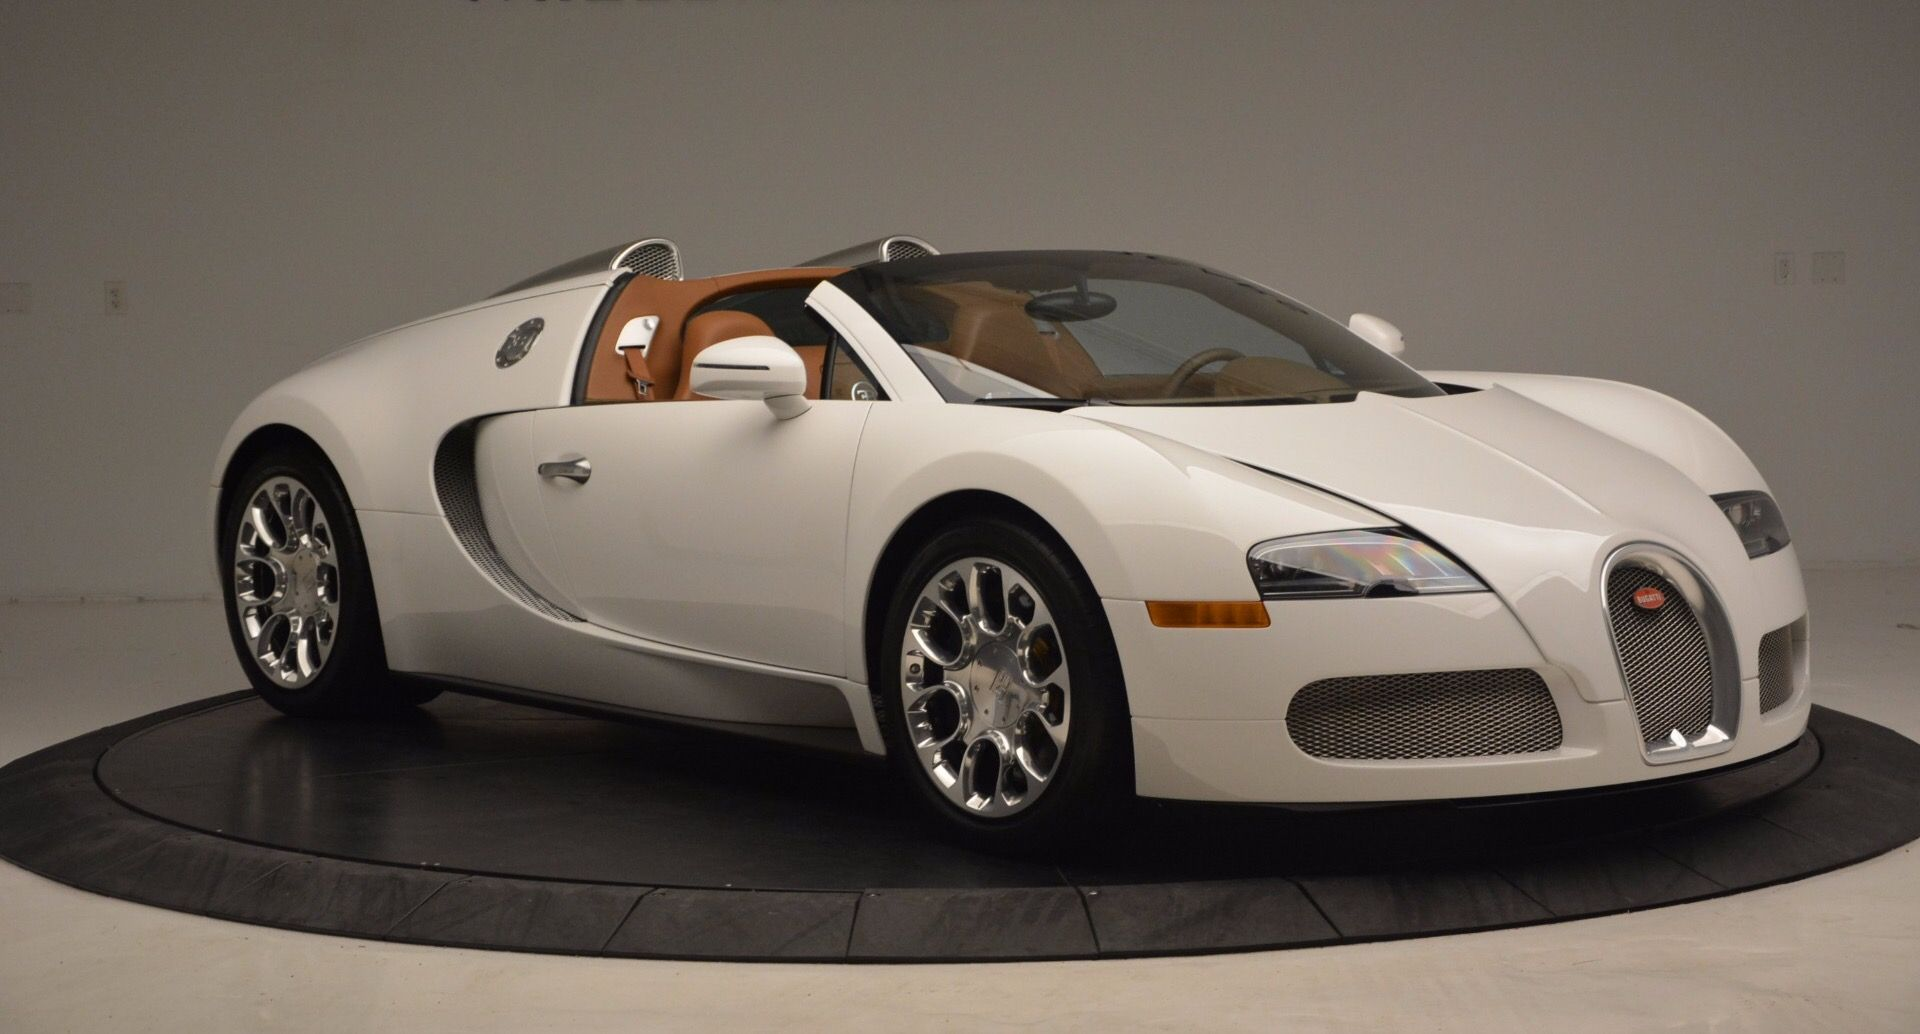 small resolution of 2011 bugatti veyron 16 4 grand sport for sale at miller motorcars rh pinterest com bugatti veyron concept bugatti veyron outline